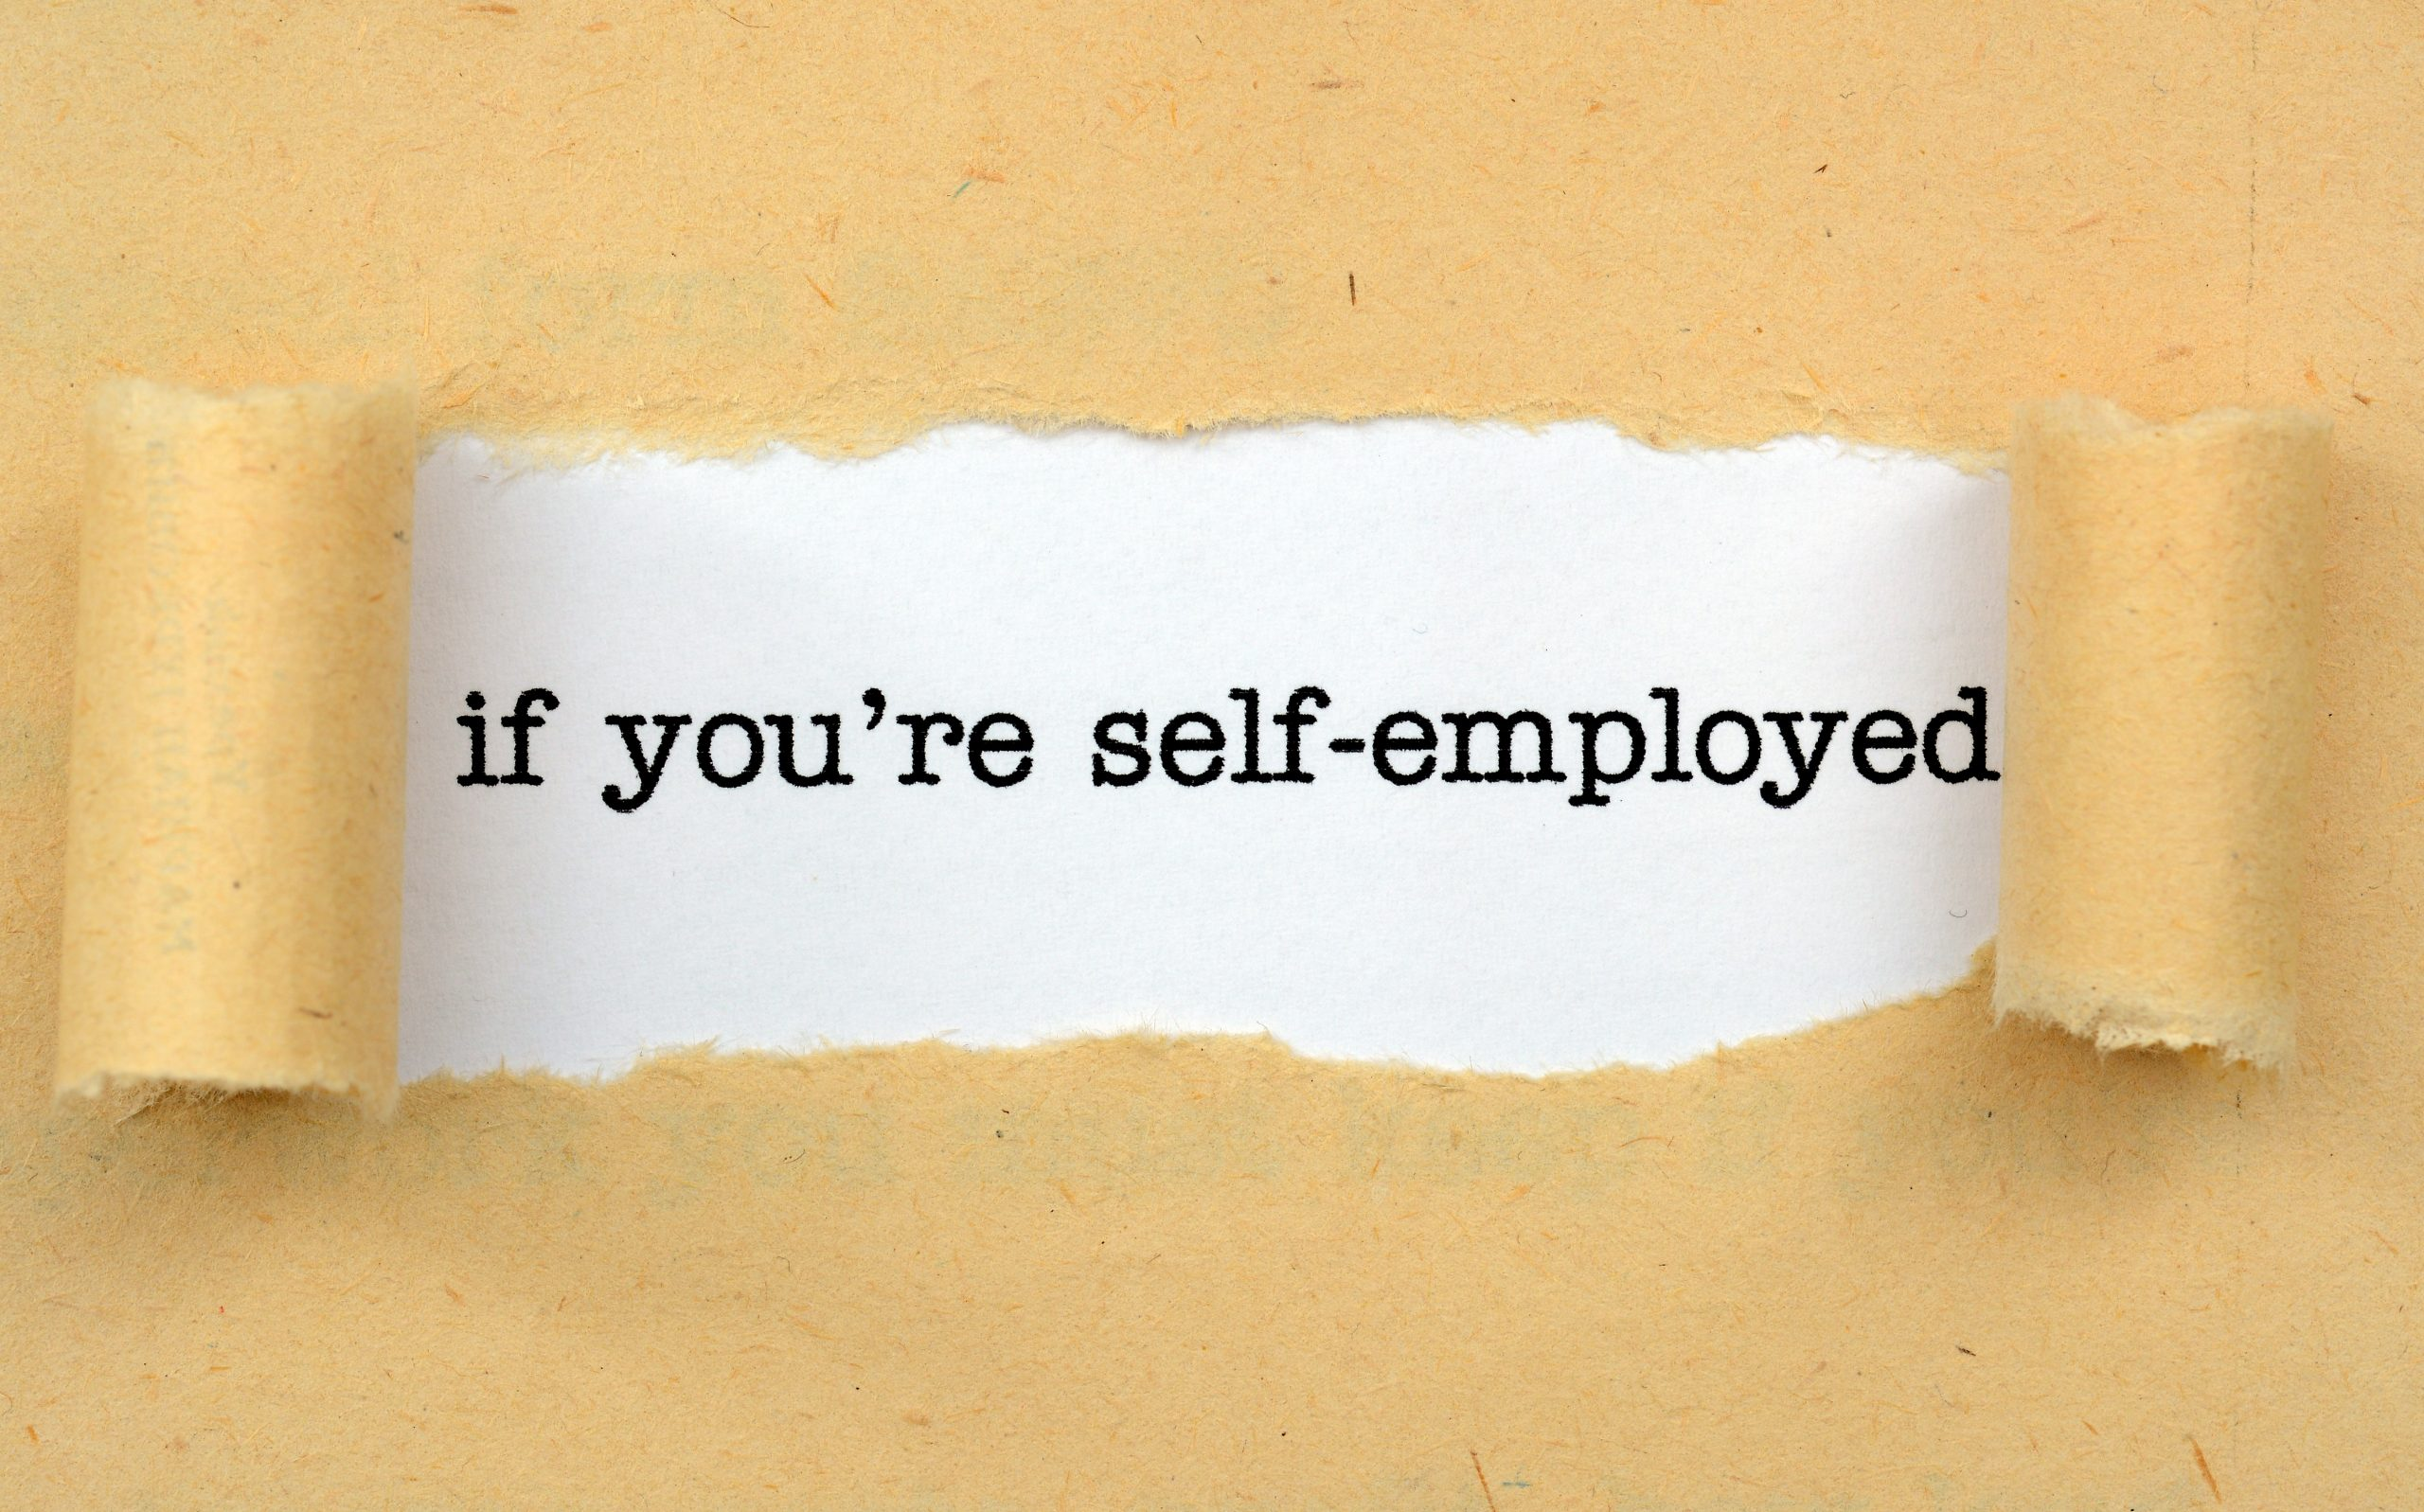 know more about IR35 if you are self employed in UK